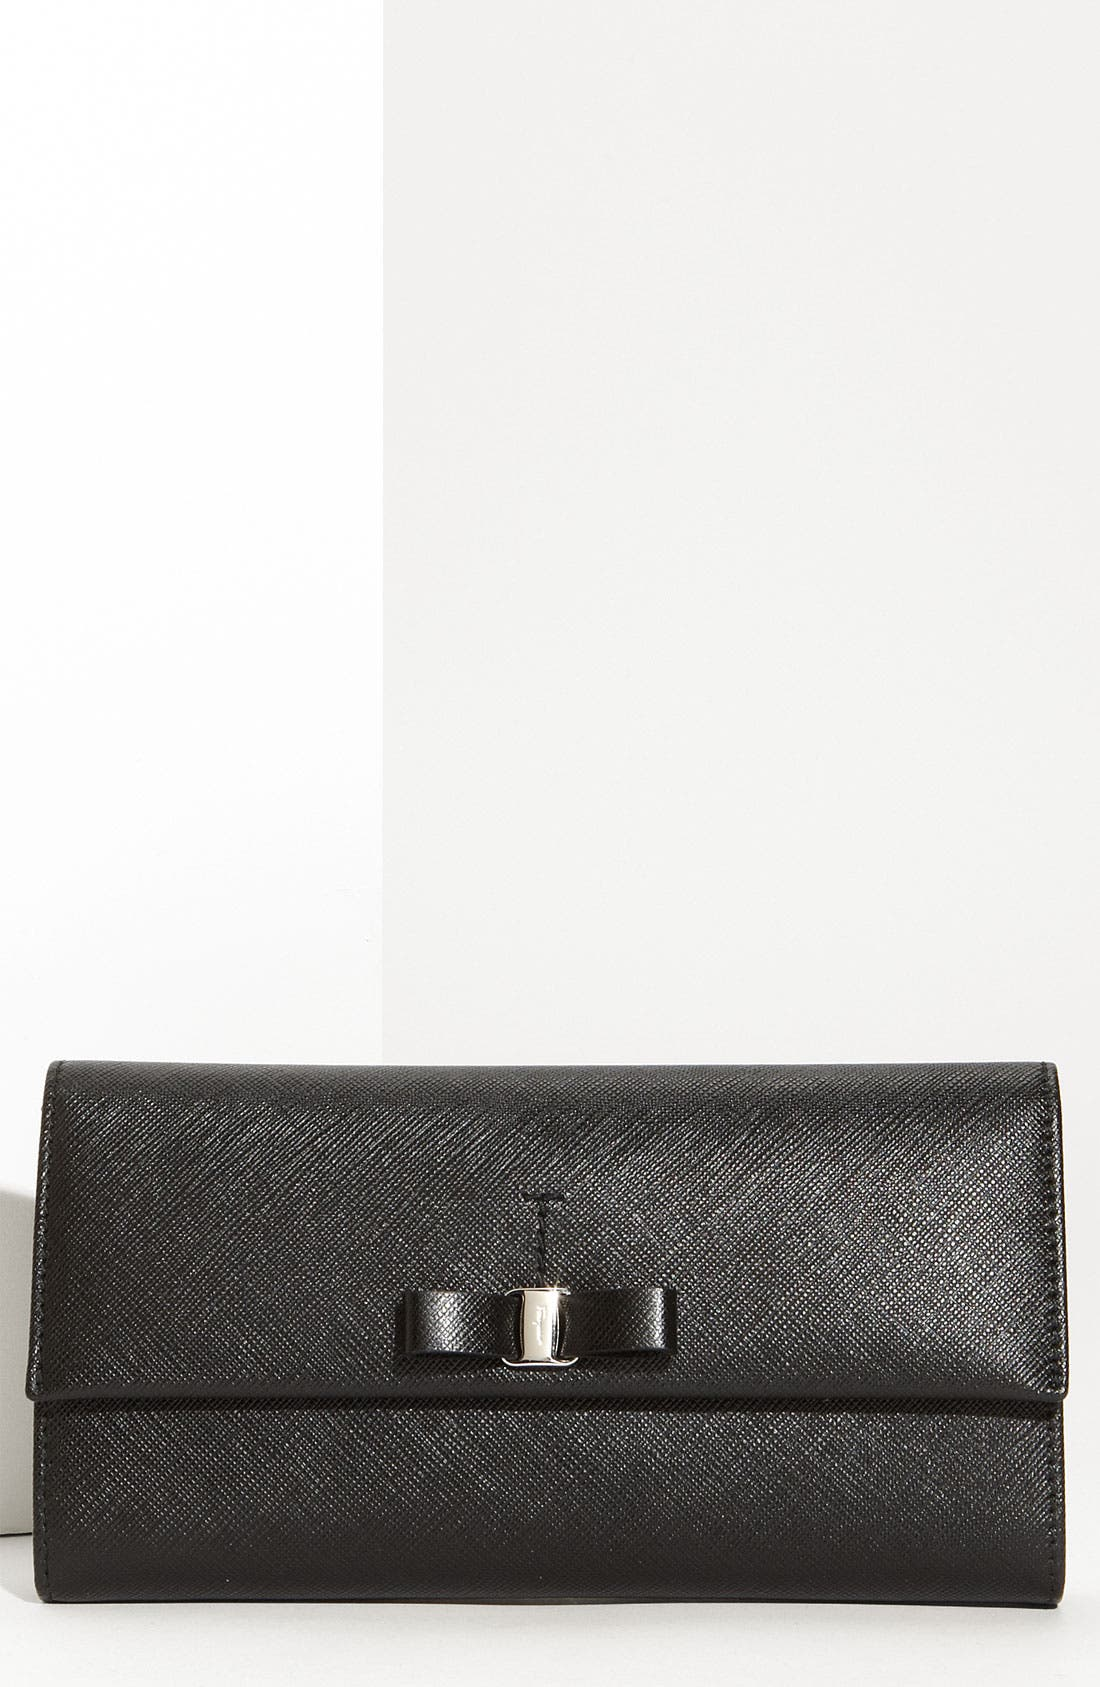 Alternate Image 1 Selected - Salvatore Ferragamo 'Vara' Continental Wallet